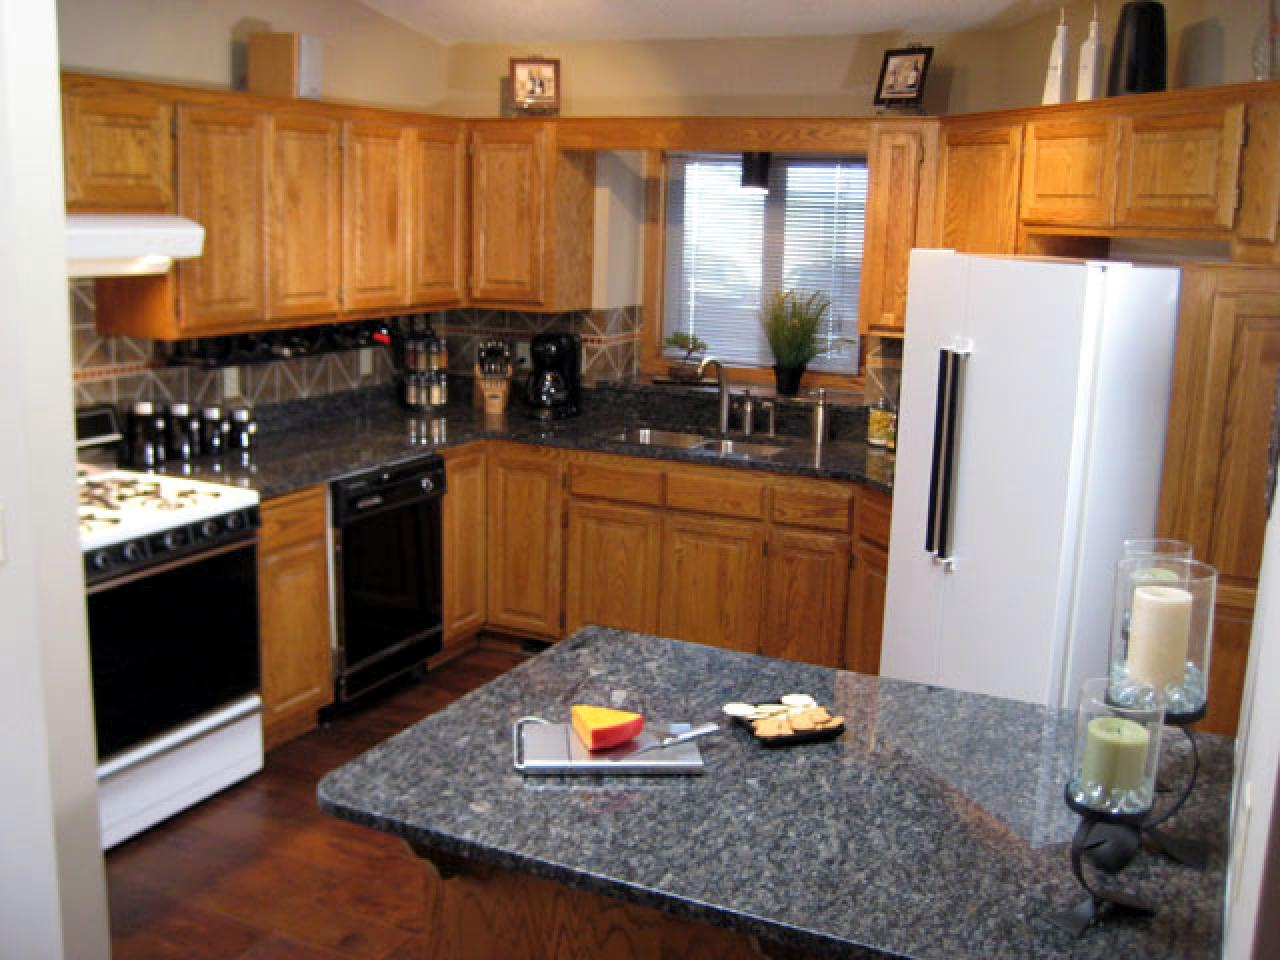 Kitchen Counter Ideas Pleasing Kitchen Countertop Ideas & Diy  Diy Review